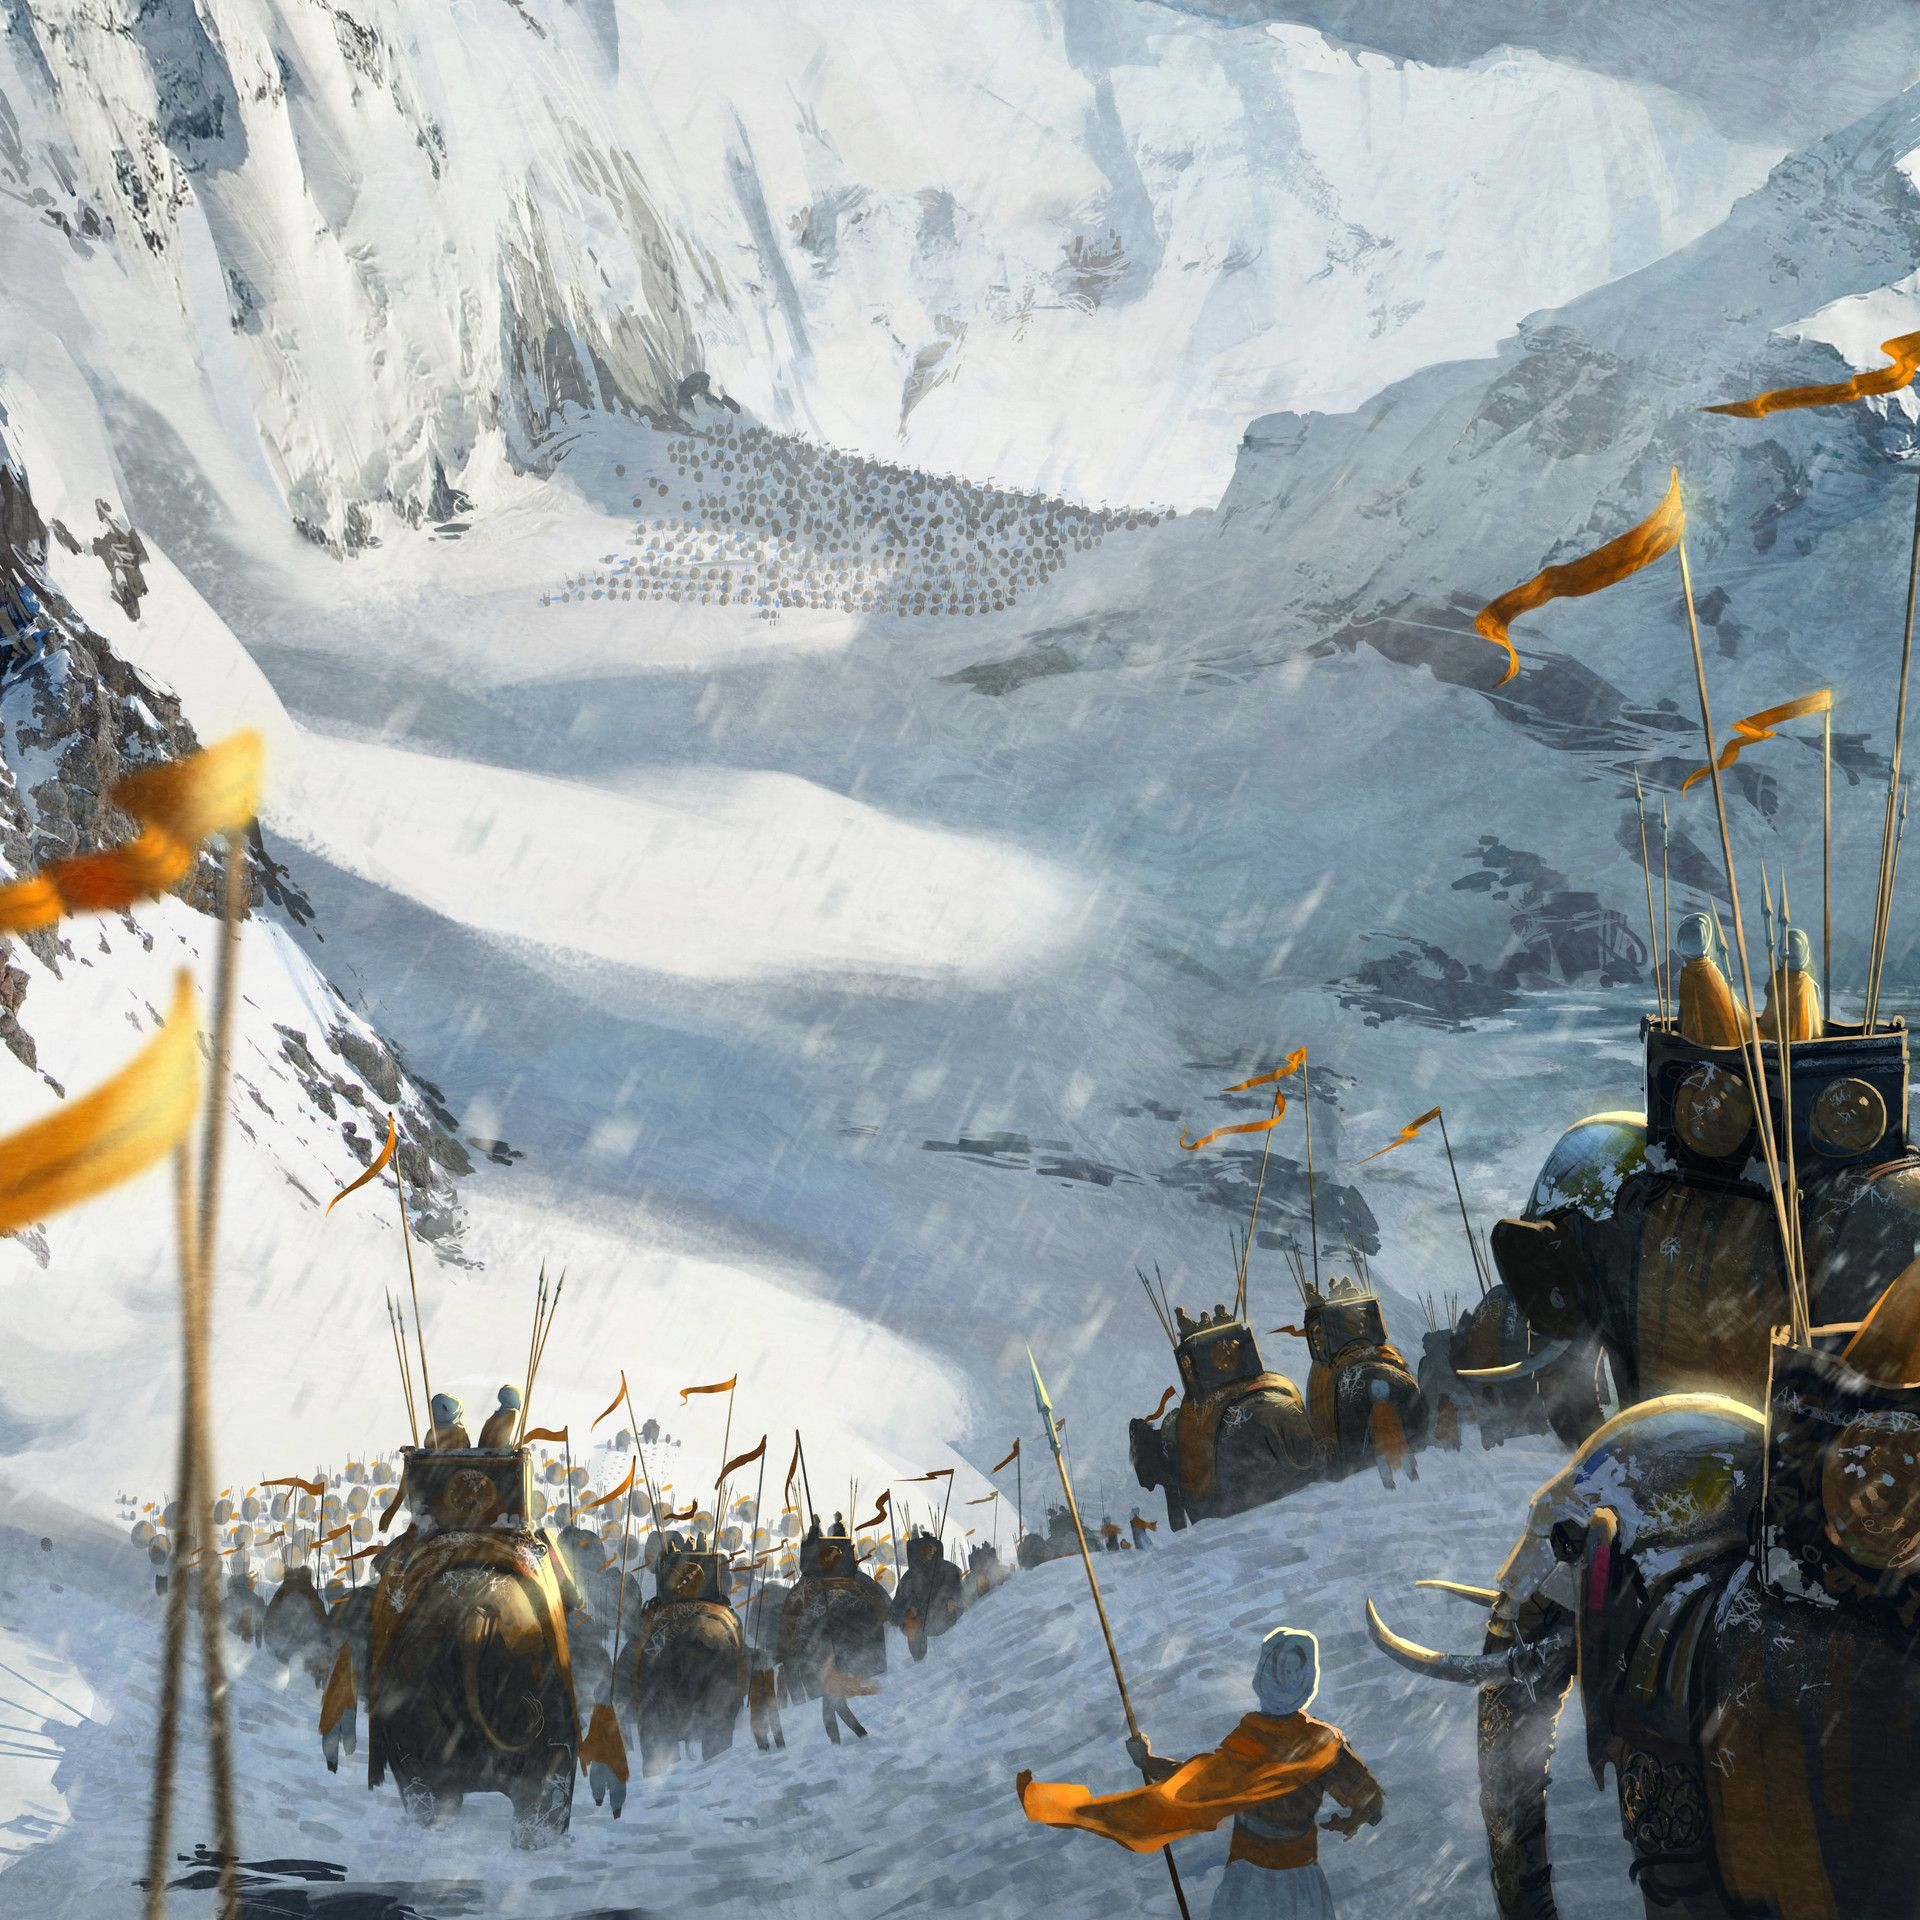 ArtStation - WAR - What is it good for?, Andrew